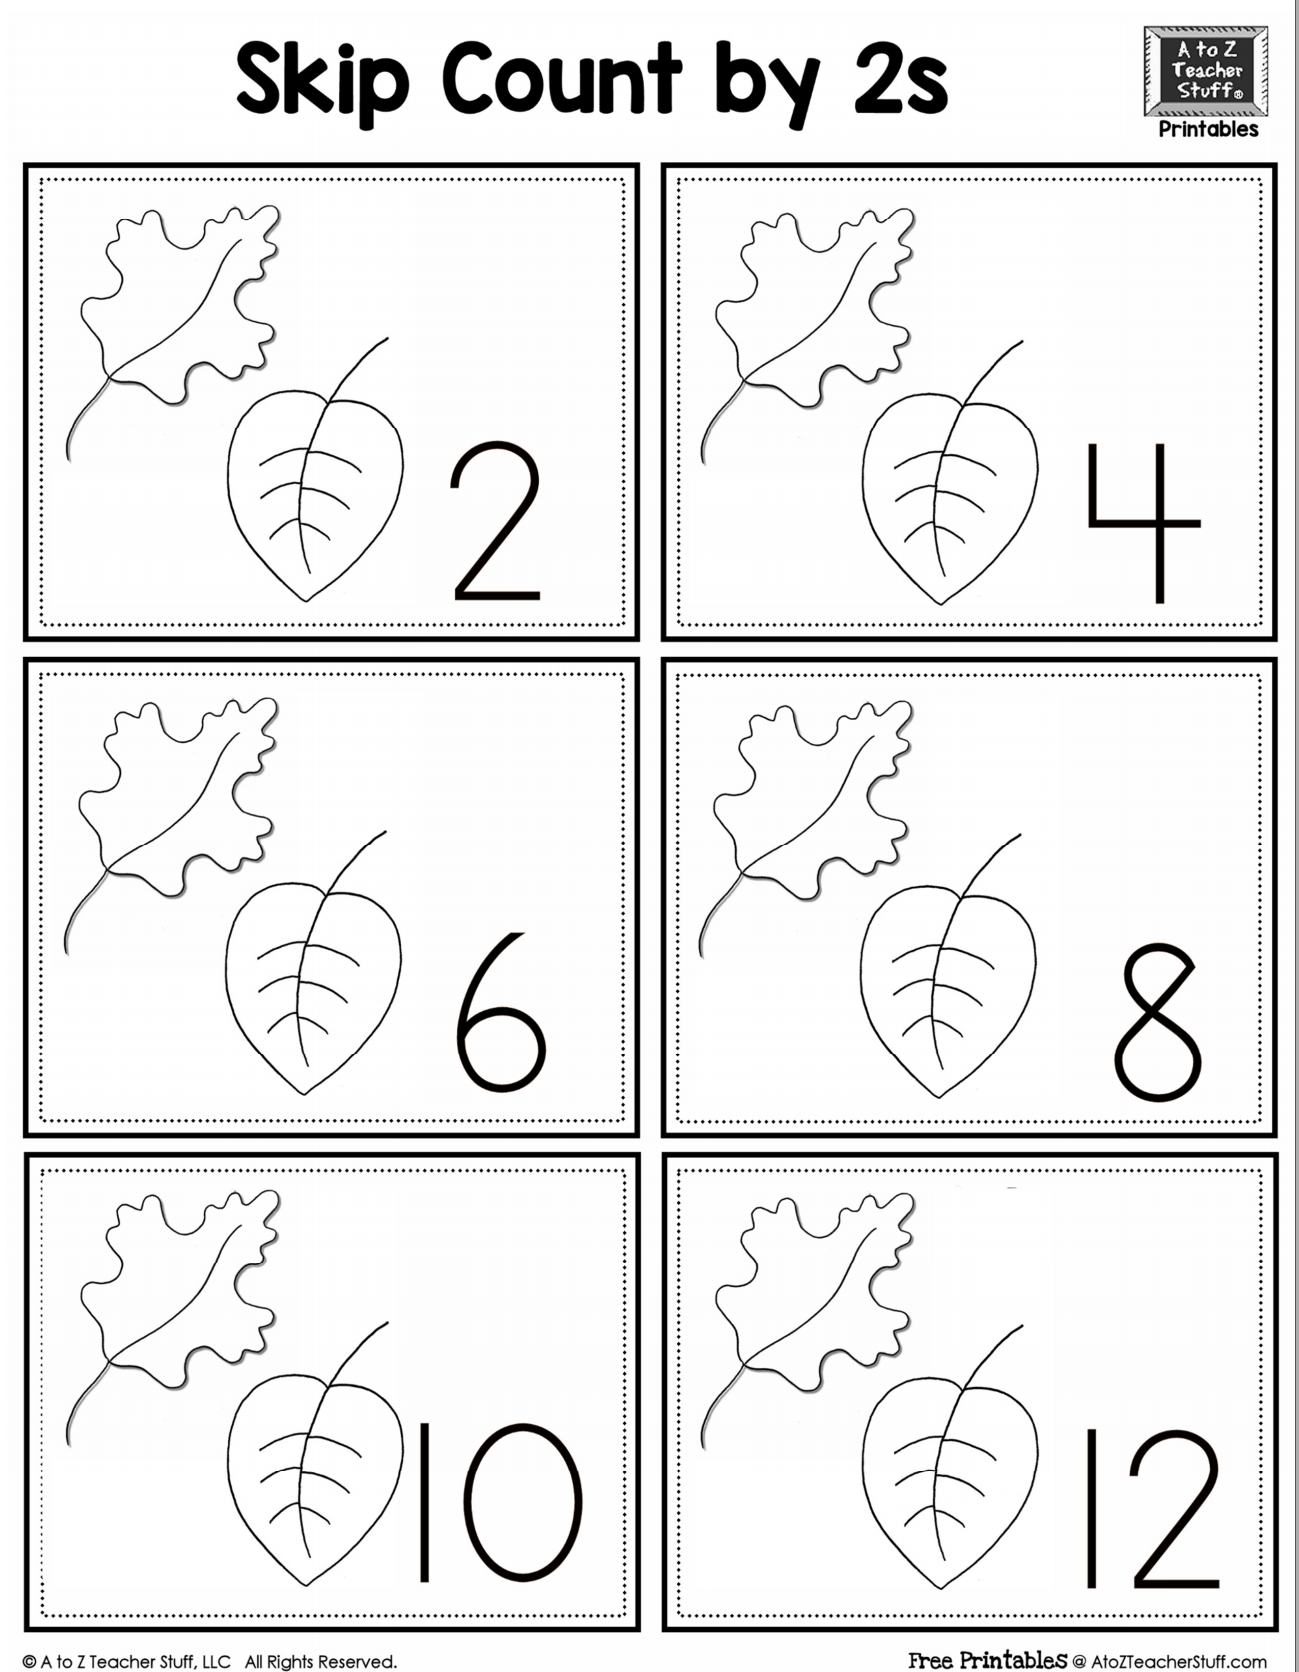 Worksheet Printable Skip Counting Worksheets leaf skip counting by 2 a to z teacher stuff printable pages and 2